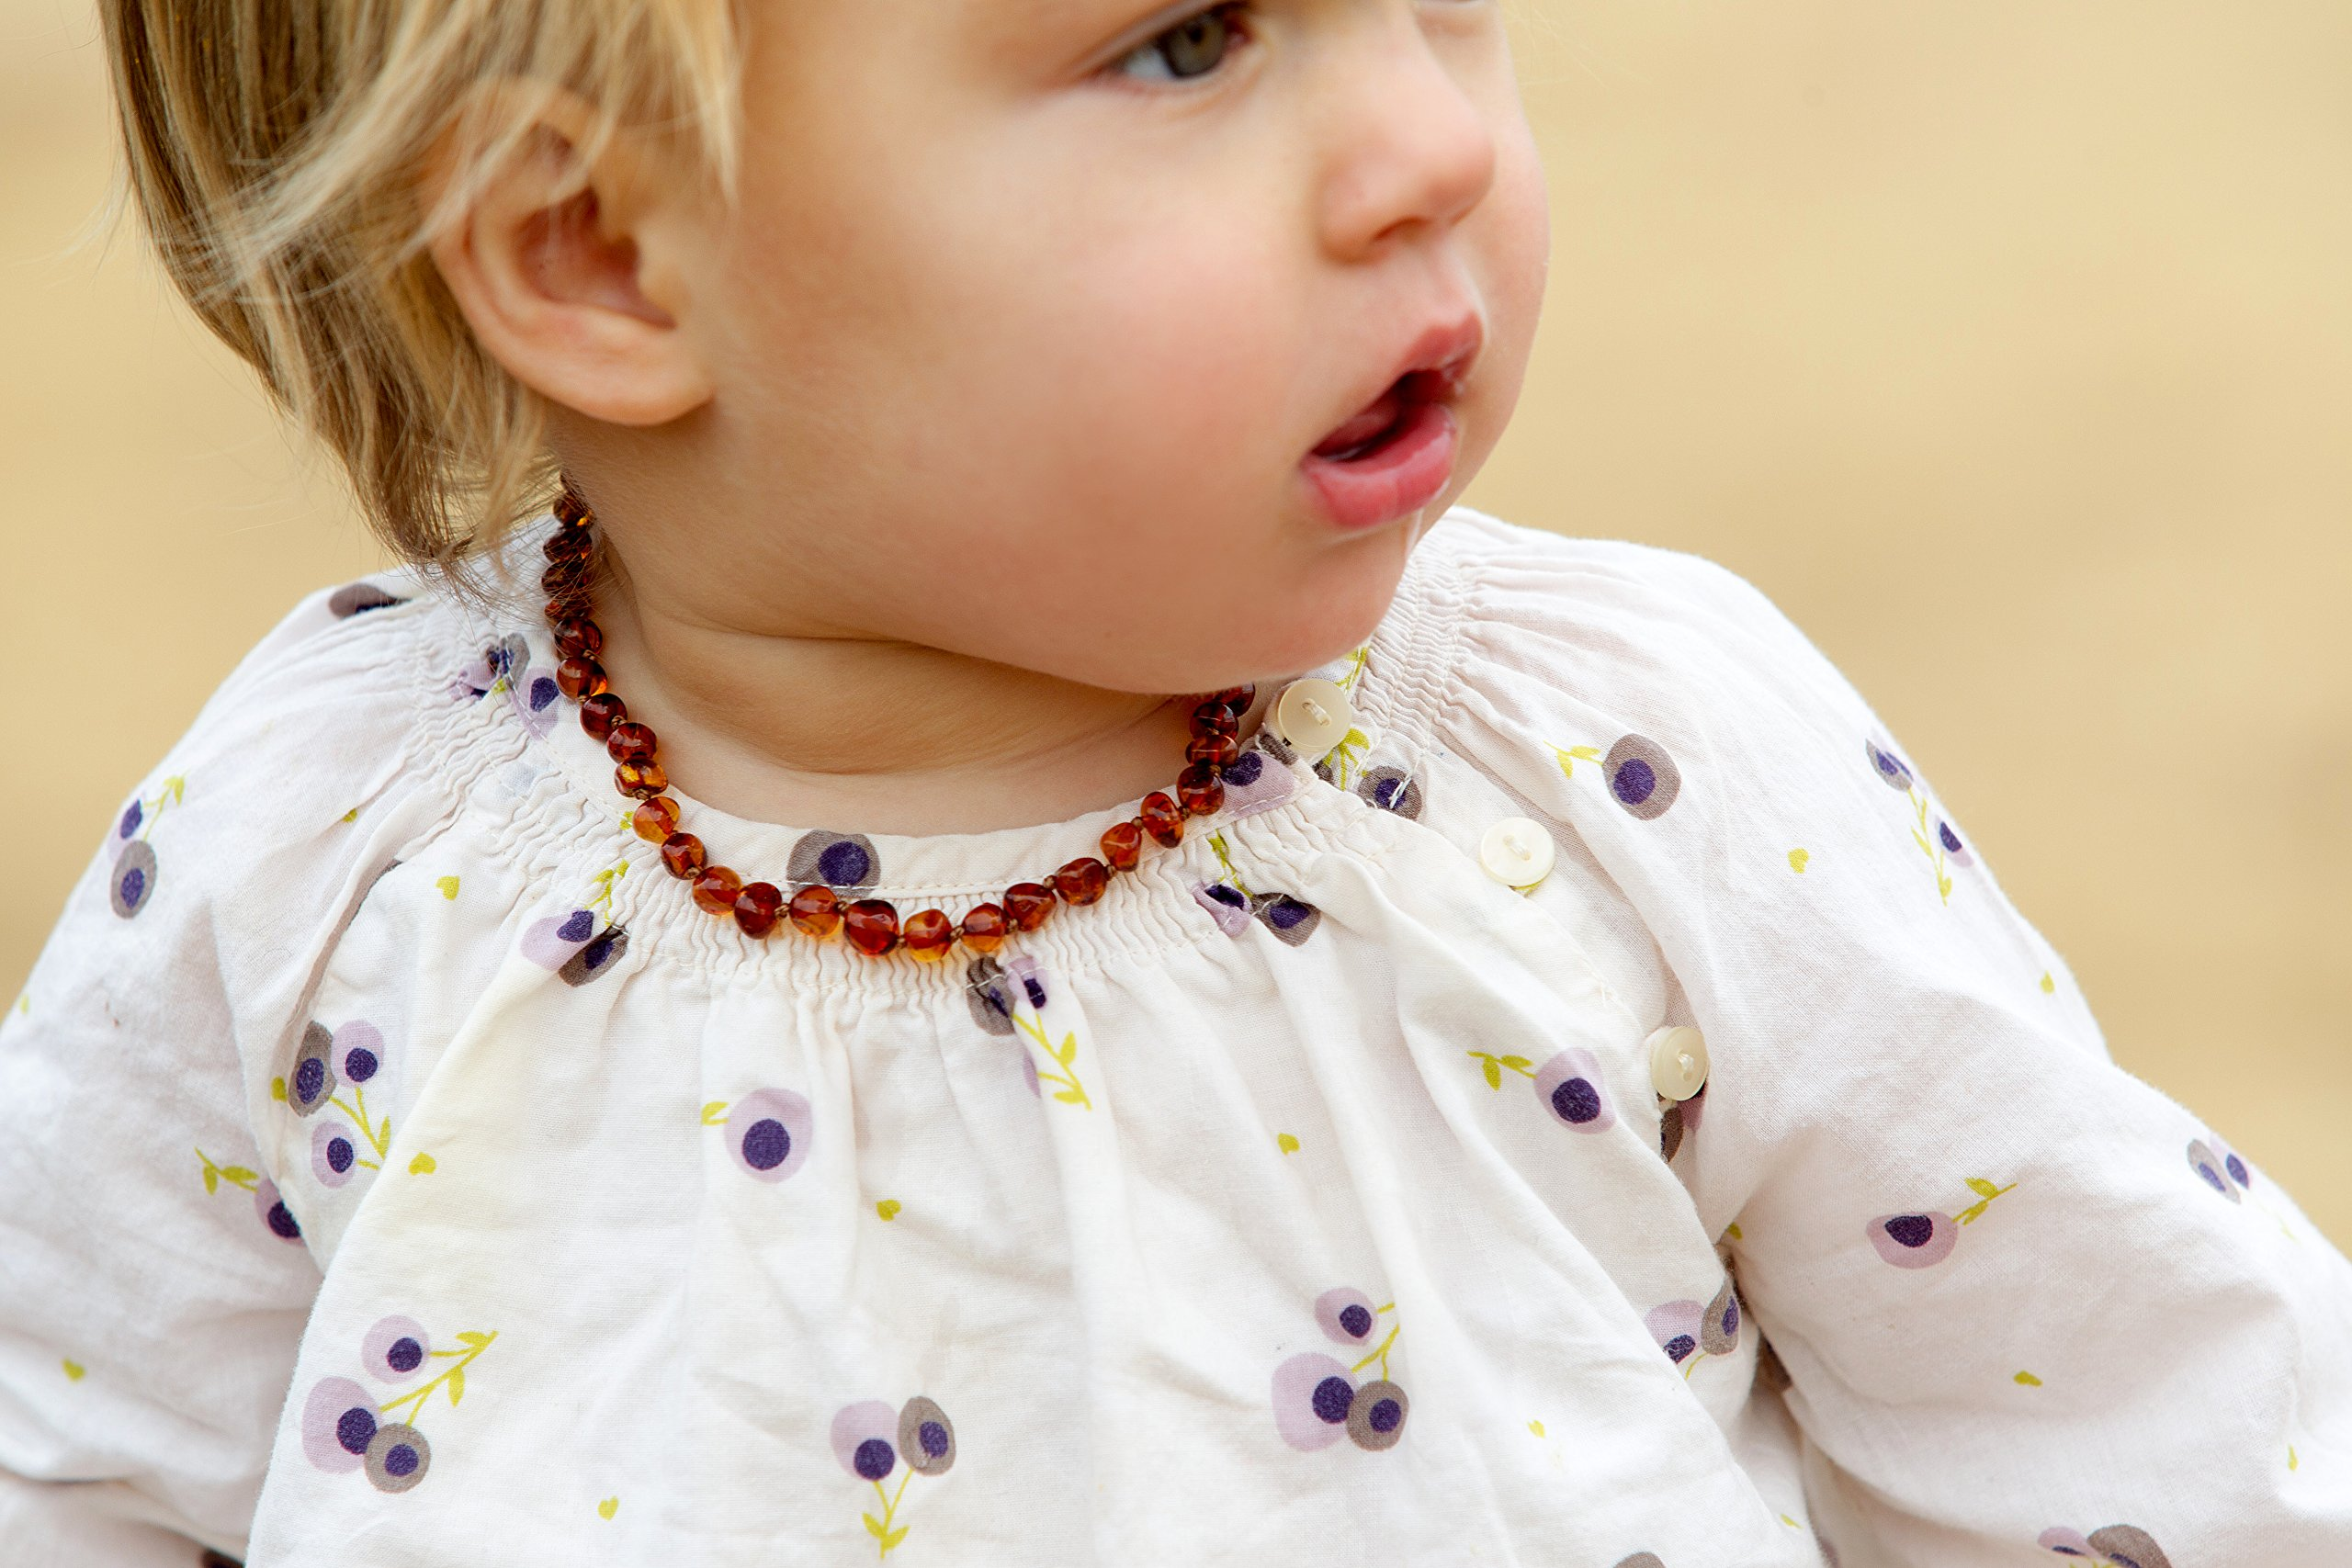 Baltic Amber Teething Necklace For Babies (Unisex) (Cognac) - Anti Flammatory, Drooling & Teething Pain Reduce Properties - Natural Certificated Oval Baltic Jewelry with the Highest Quality Guaranteed by Baltic Wonder (Image #6)